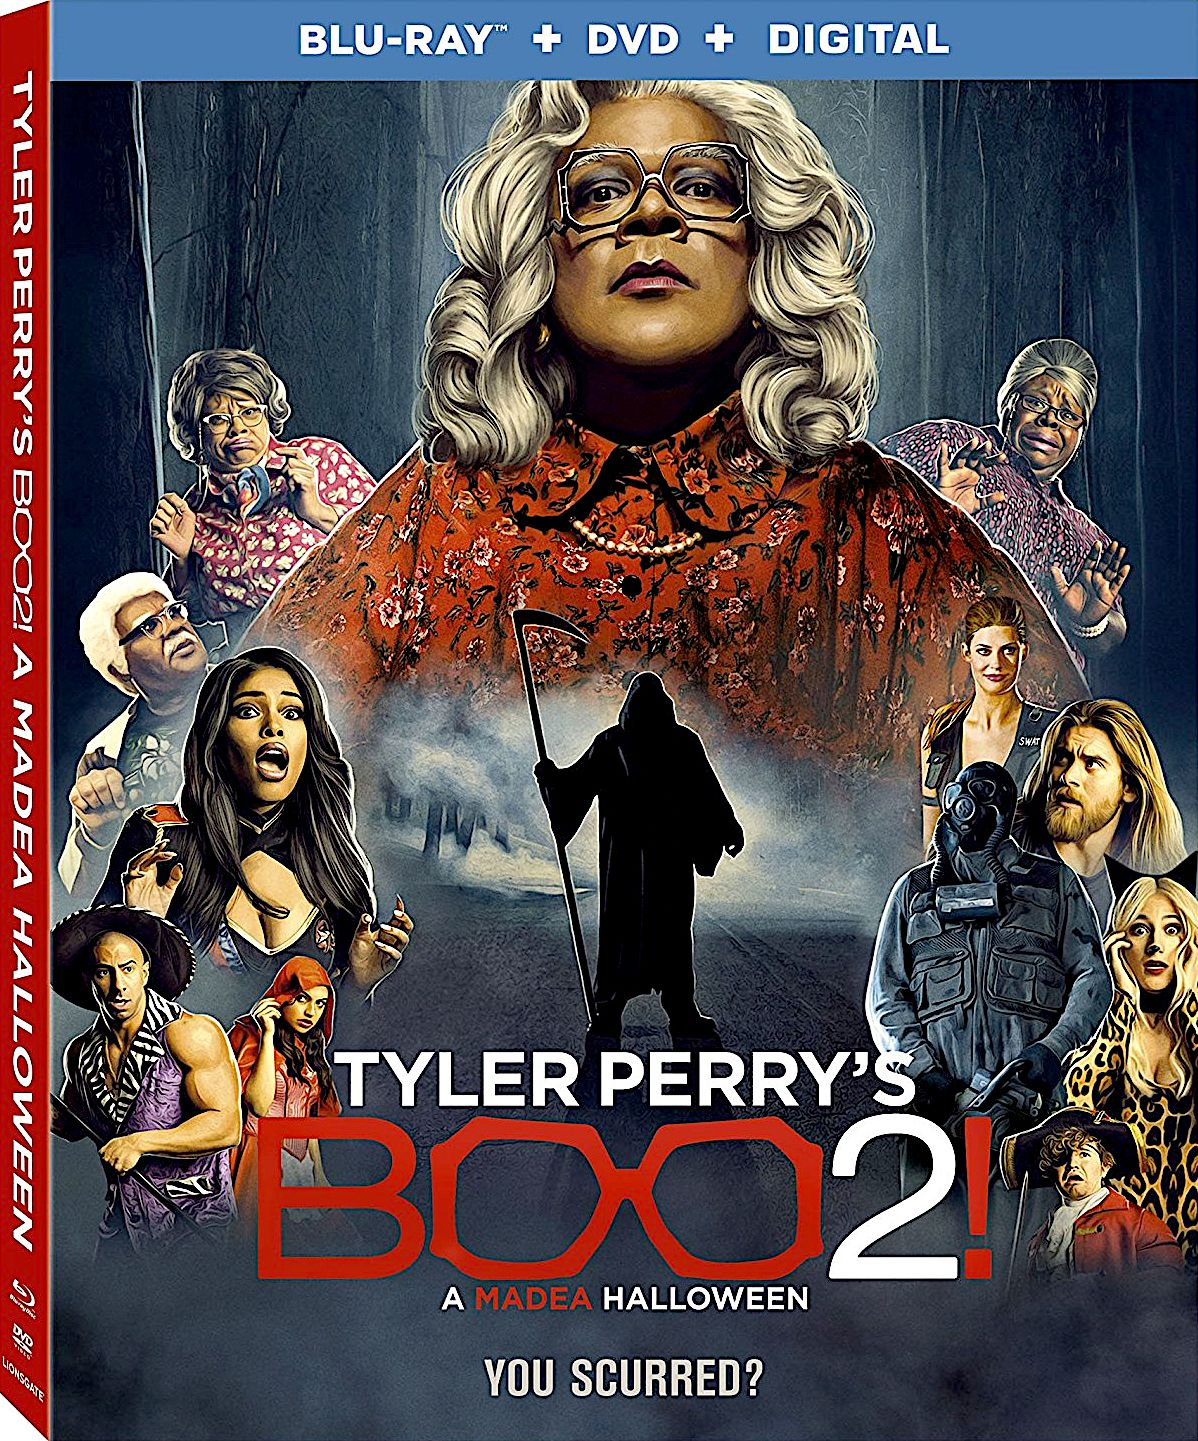 BOO2! A MADEA HALLOWEEN BLU-RAY (LIONSGATE) | RECENT AND UPCOMING ...